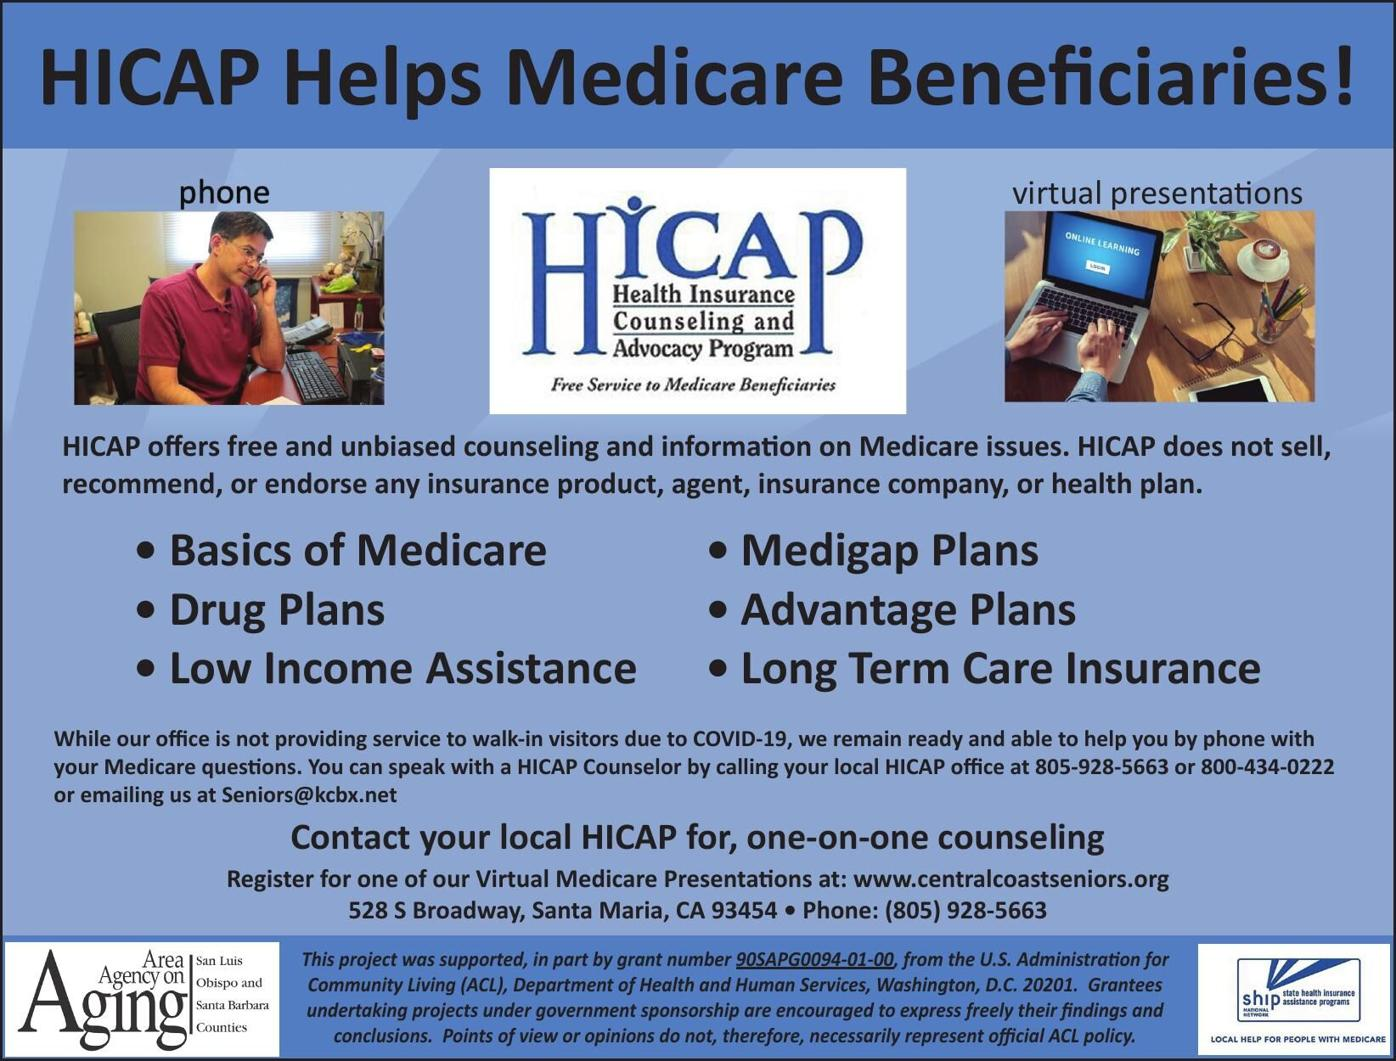 HICAP Helps Medicare Beneficiaries!